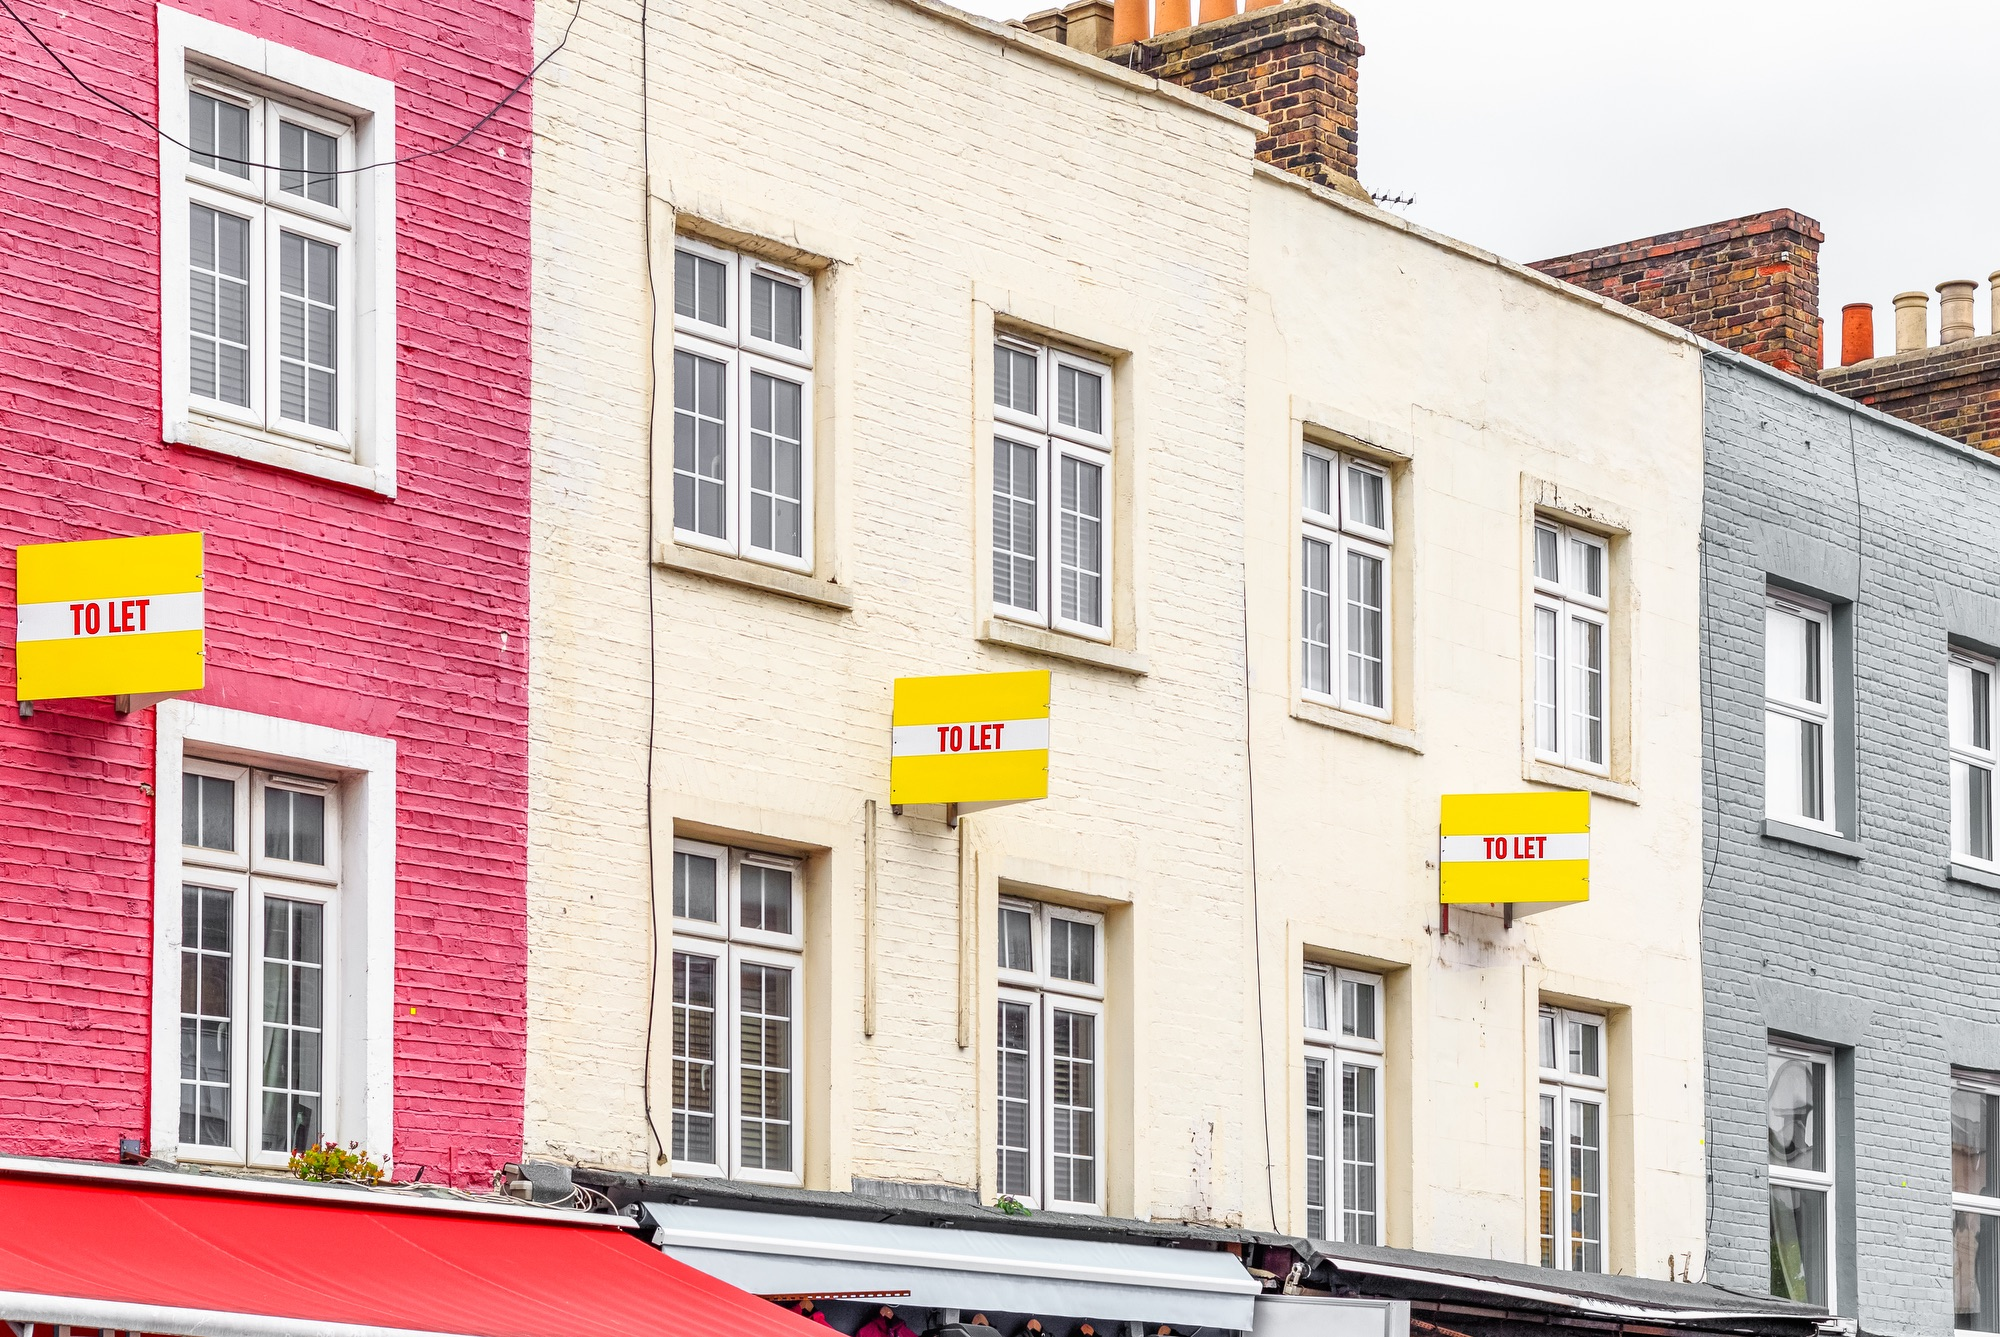 SS_Colourful terraced houses with TO LET signs around Camden Town in London